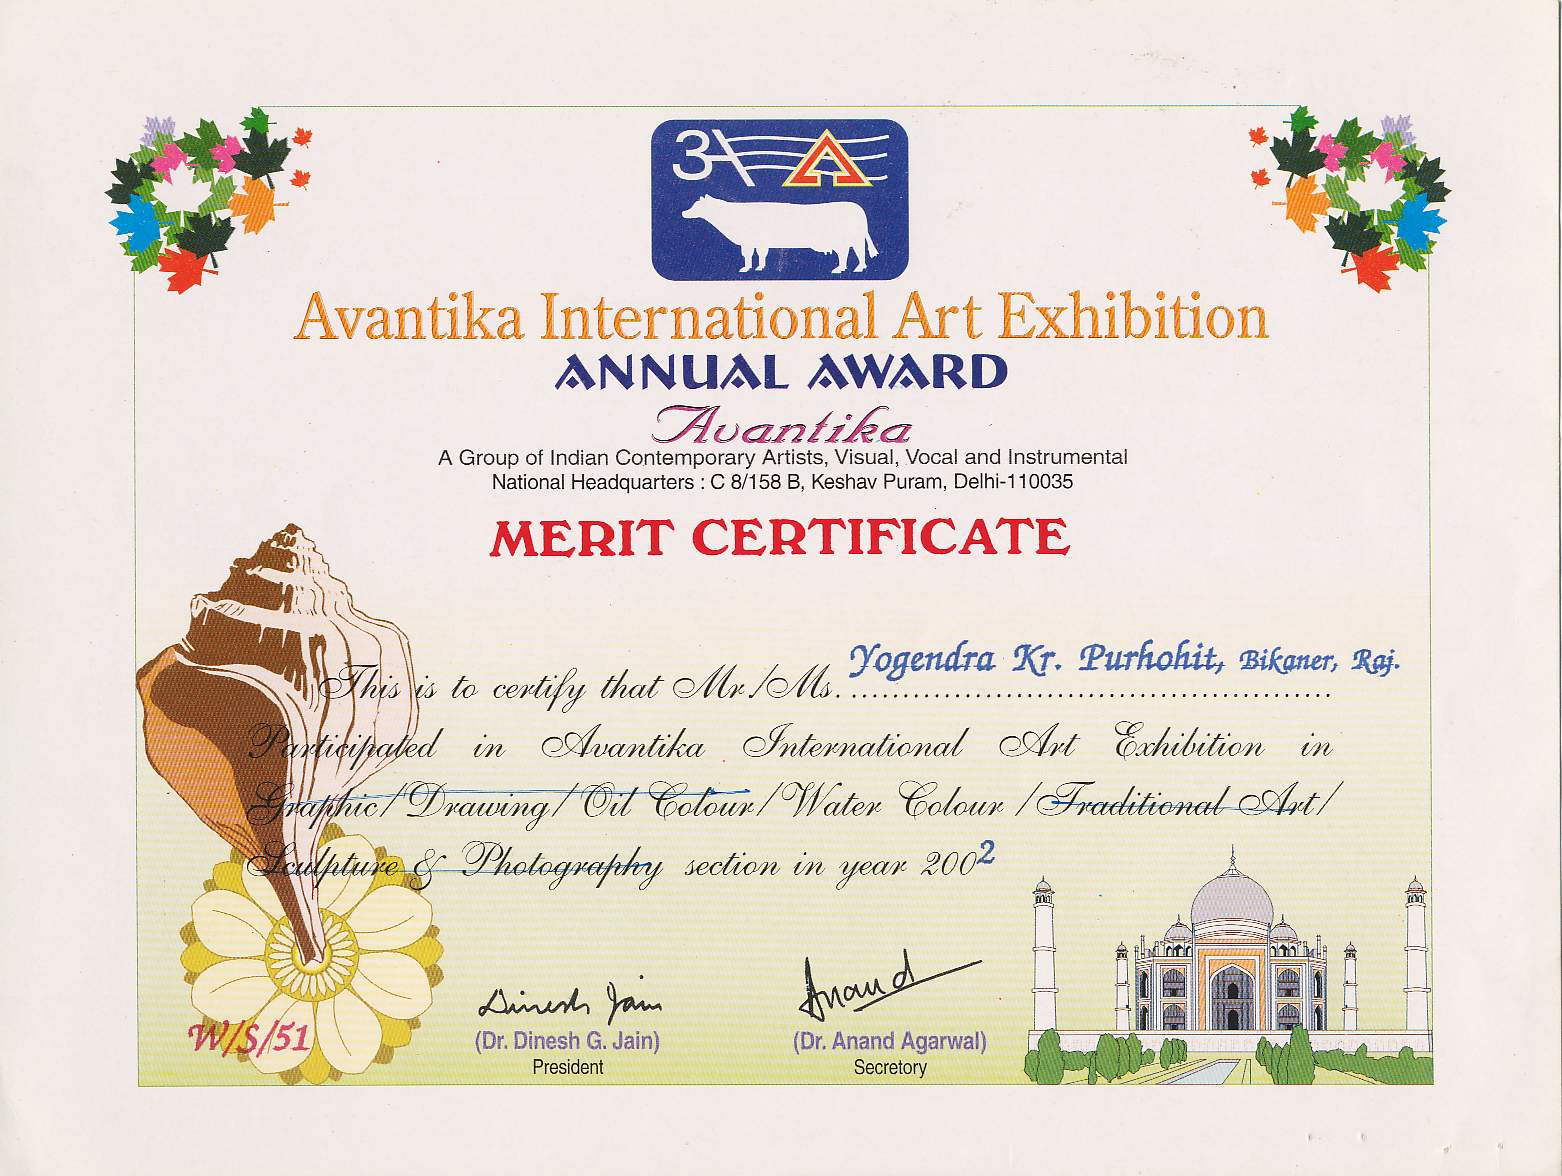 Certificate OF Avantika International Art Exhibnition 2002 , Delhi.  Merit Certificate Comments